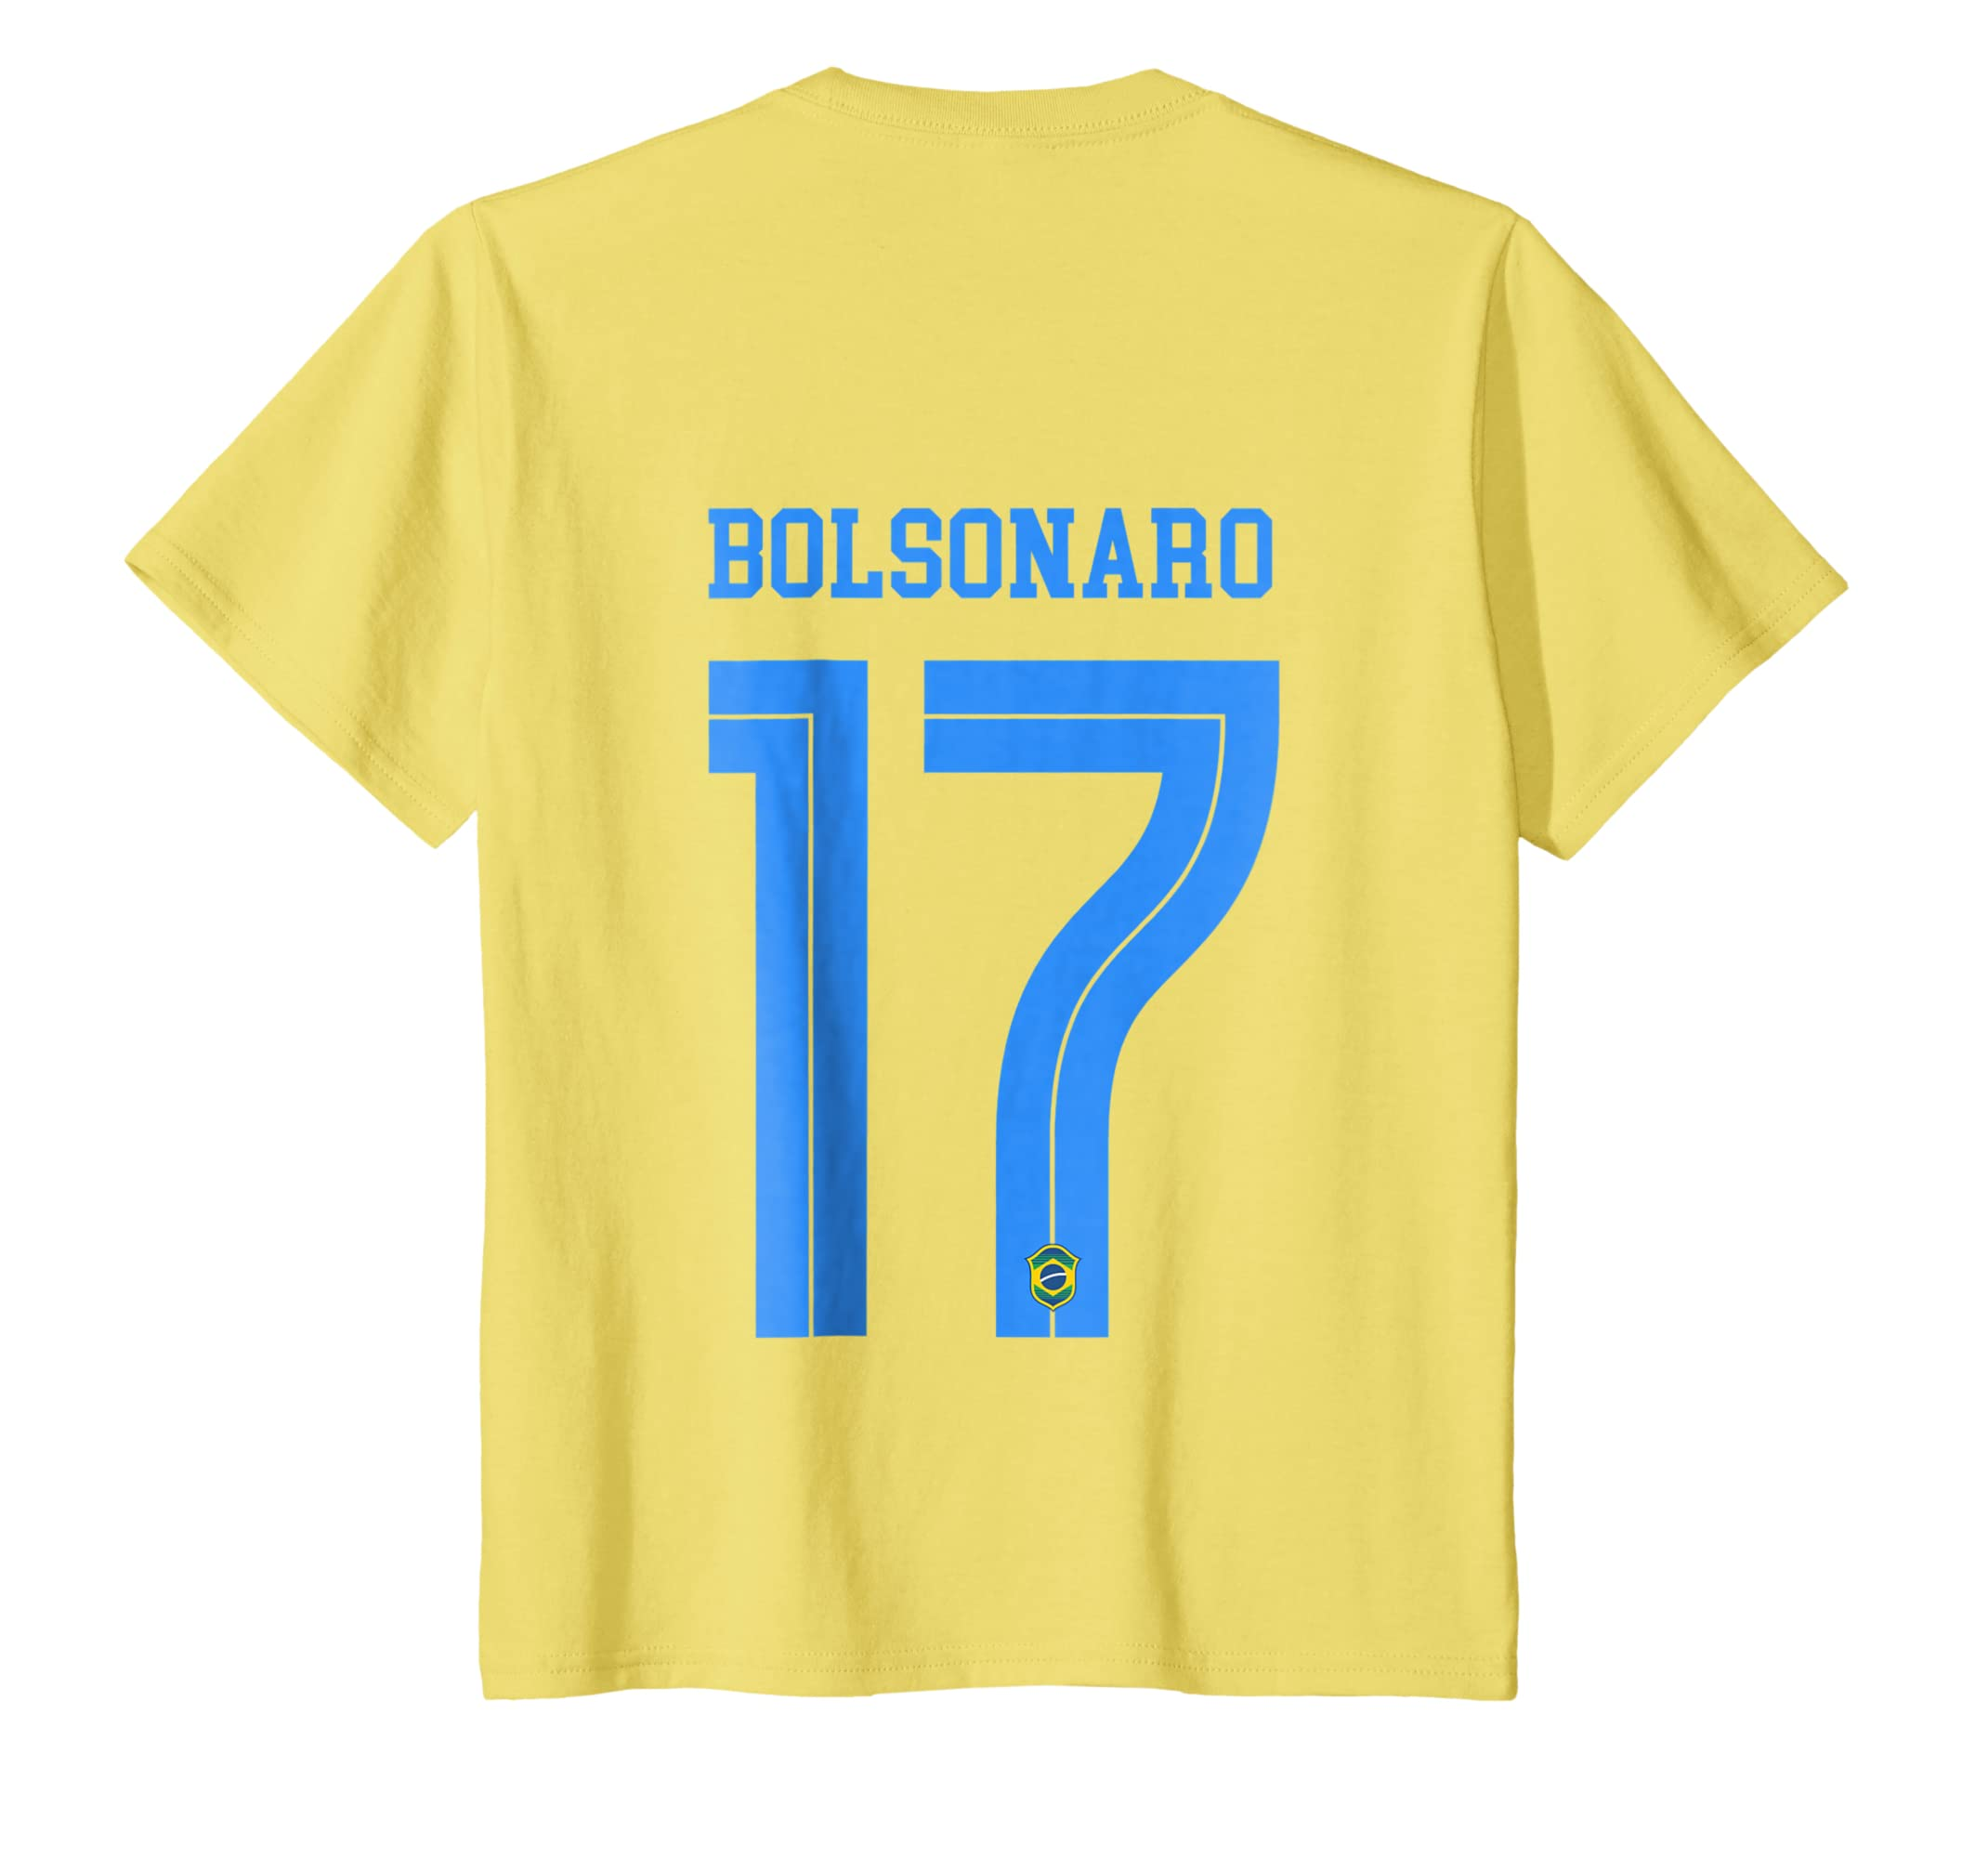 Amazon.com: NUMERO COSTAS VOTE 17 Bolsonaro Presidente 2018 T-shirt: Clothing